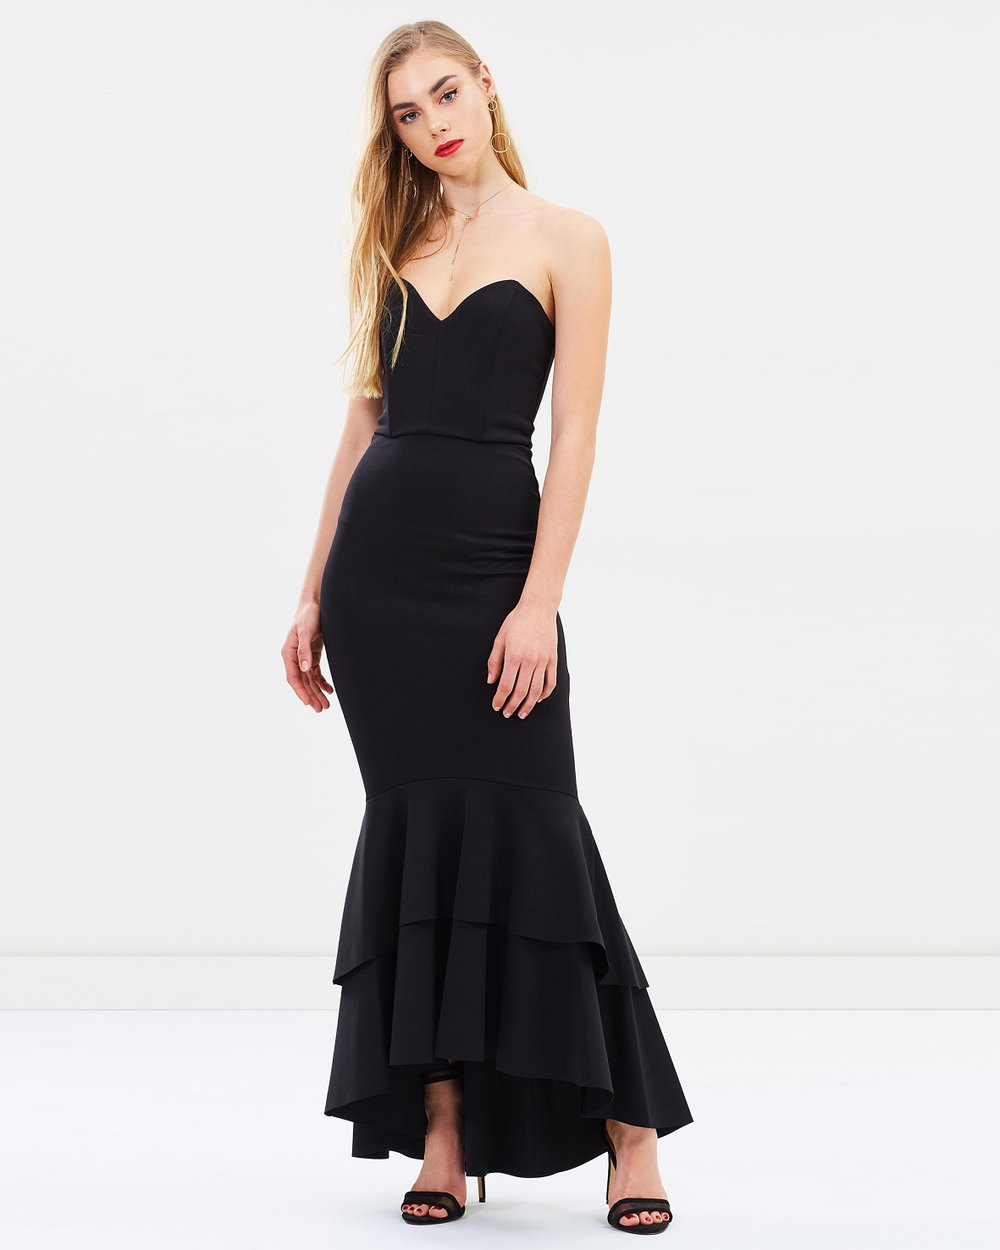 Bandeau Fishtail Prom Dress By Miss Selfridge Online The Iconic